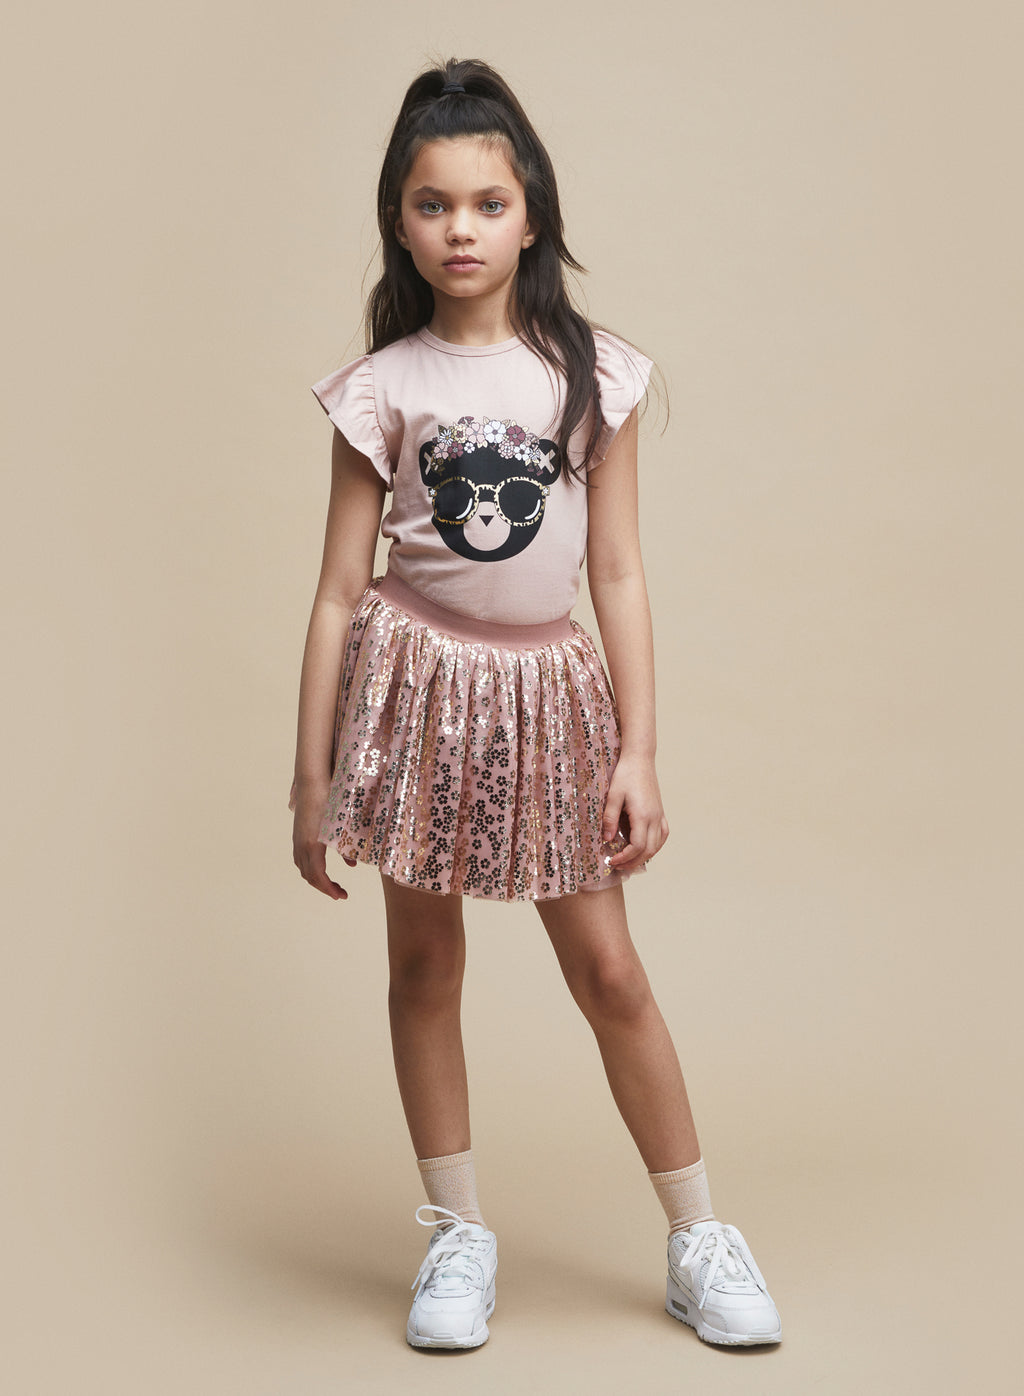 Huxbaby_Gold Floral Tulle Skirt - The Child Hood